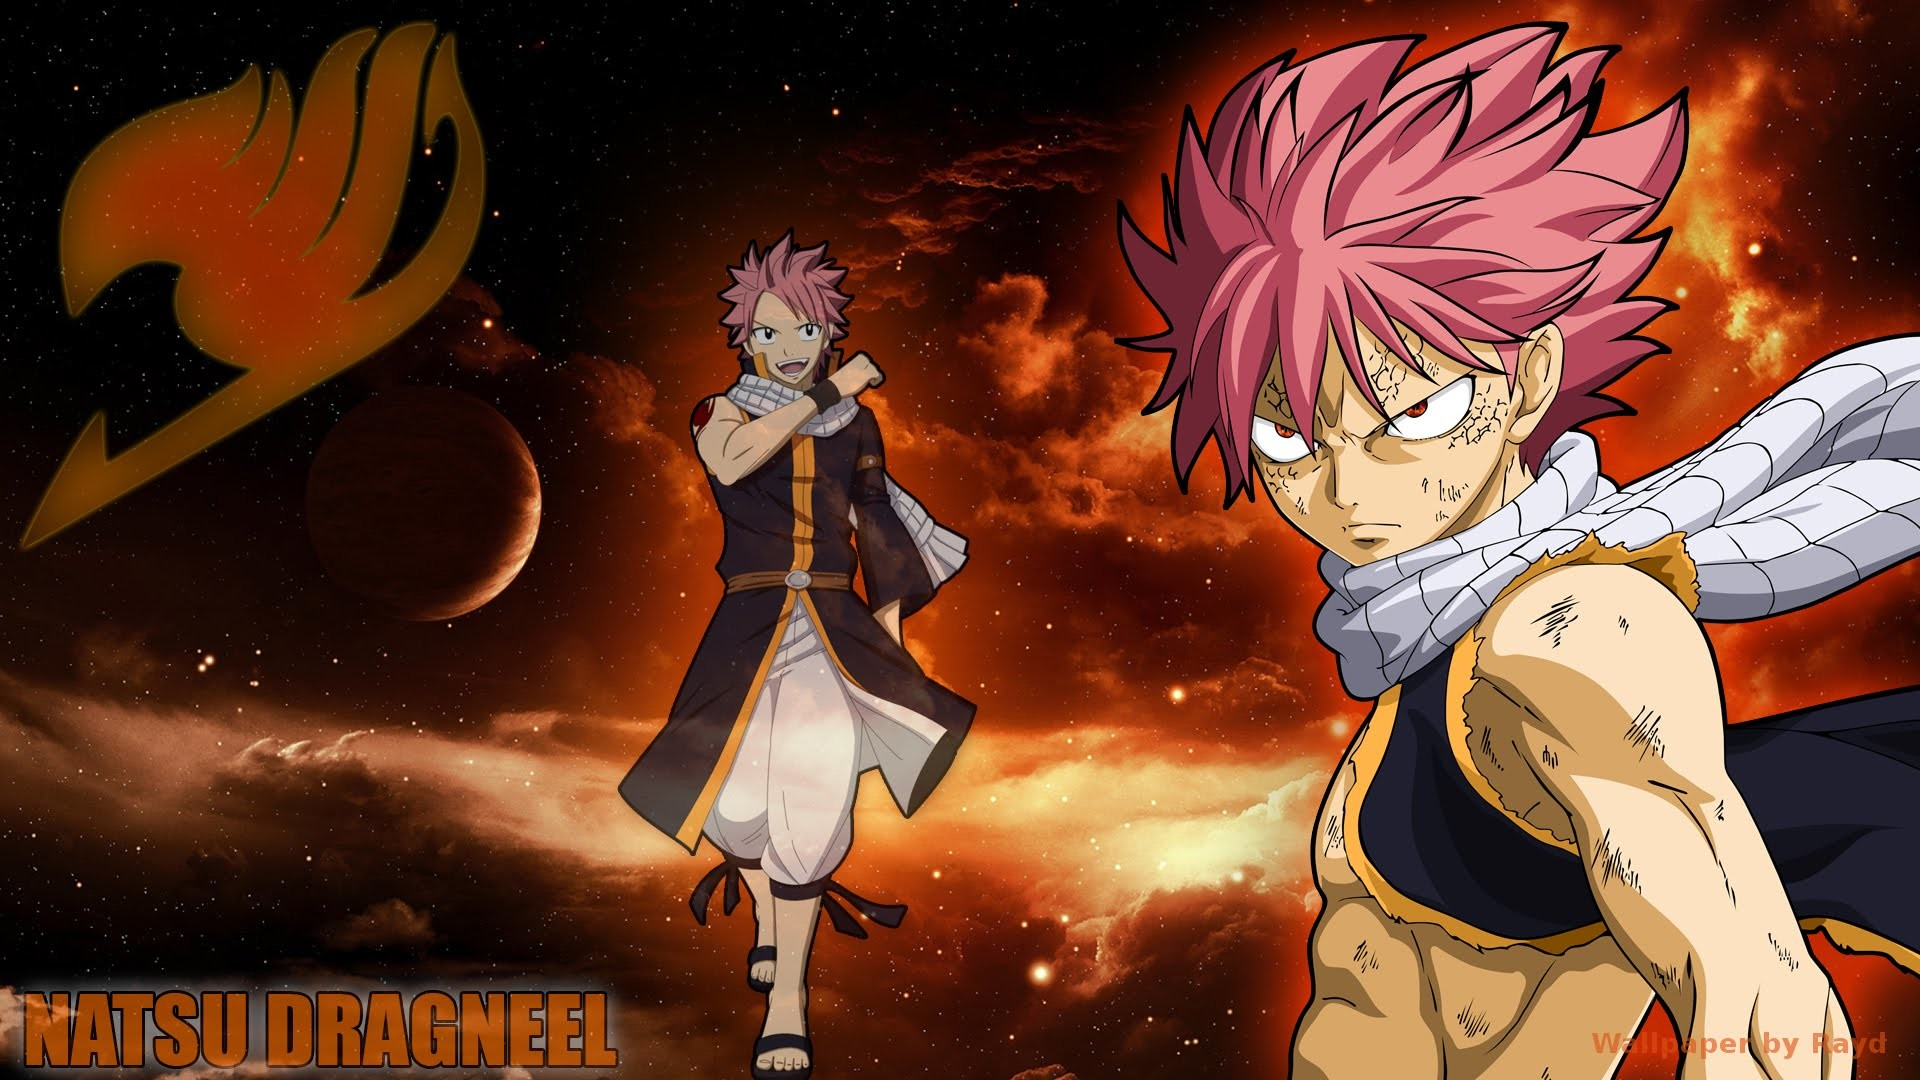 Fairy tail 2018 wallpaper hd 58 images - Best anime picture hd ...